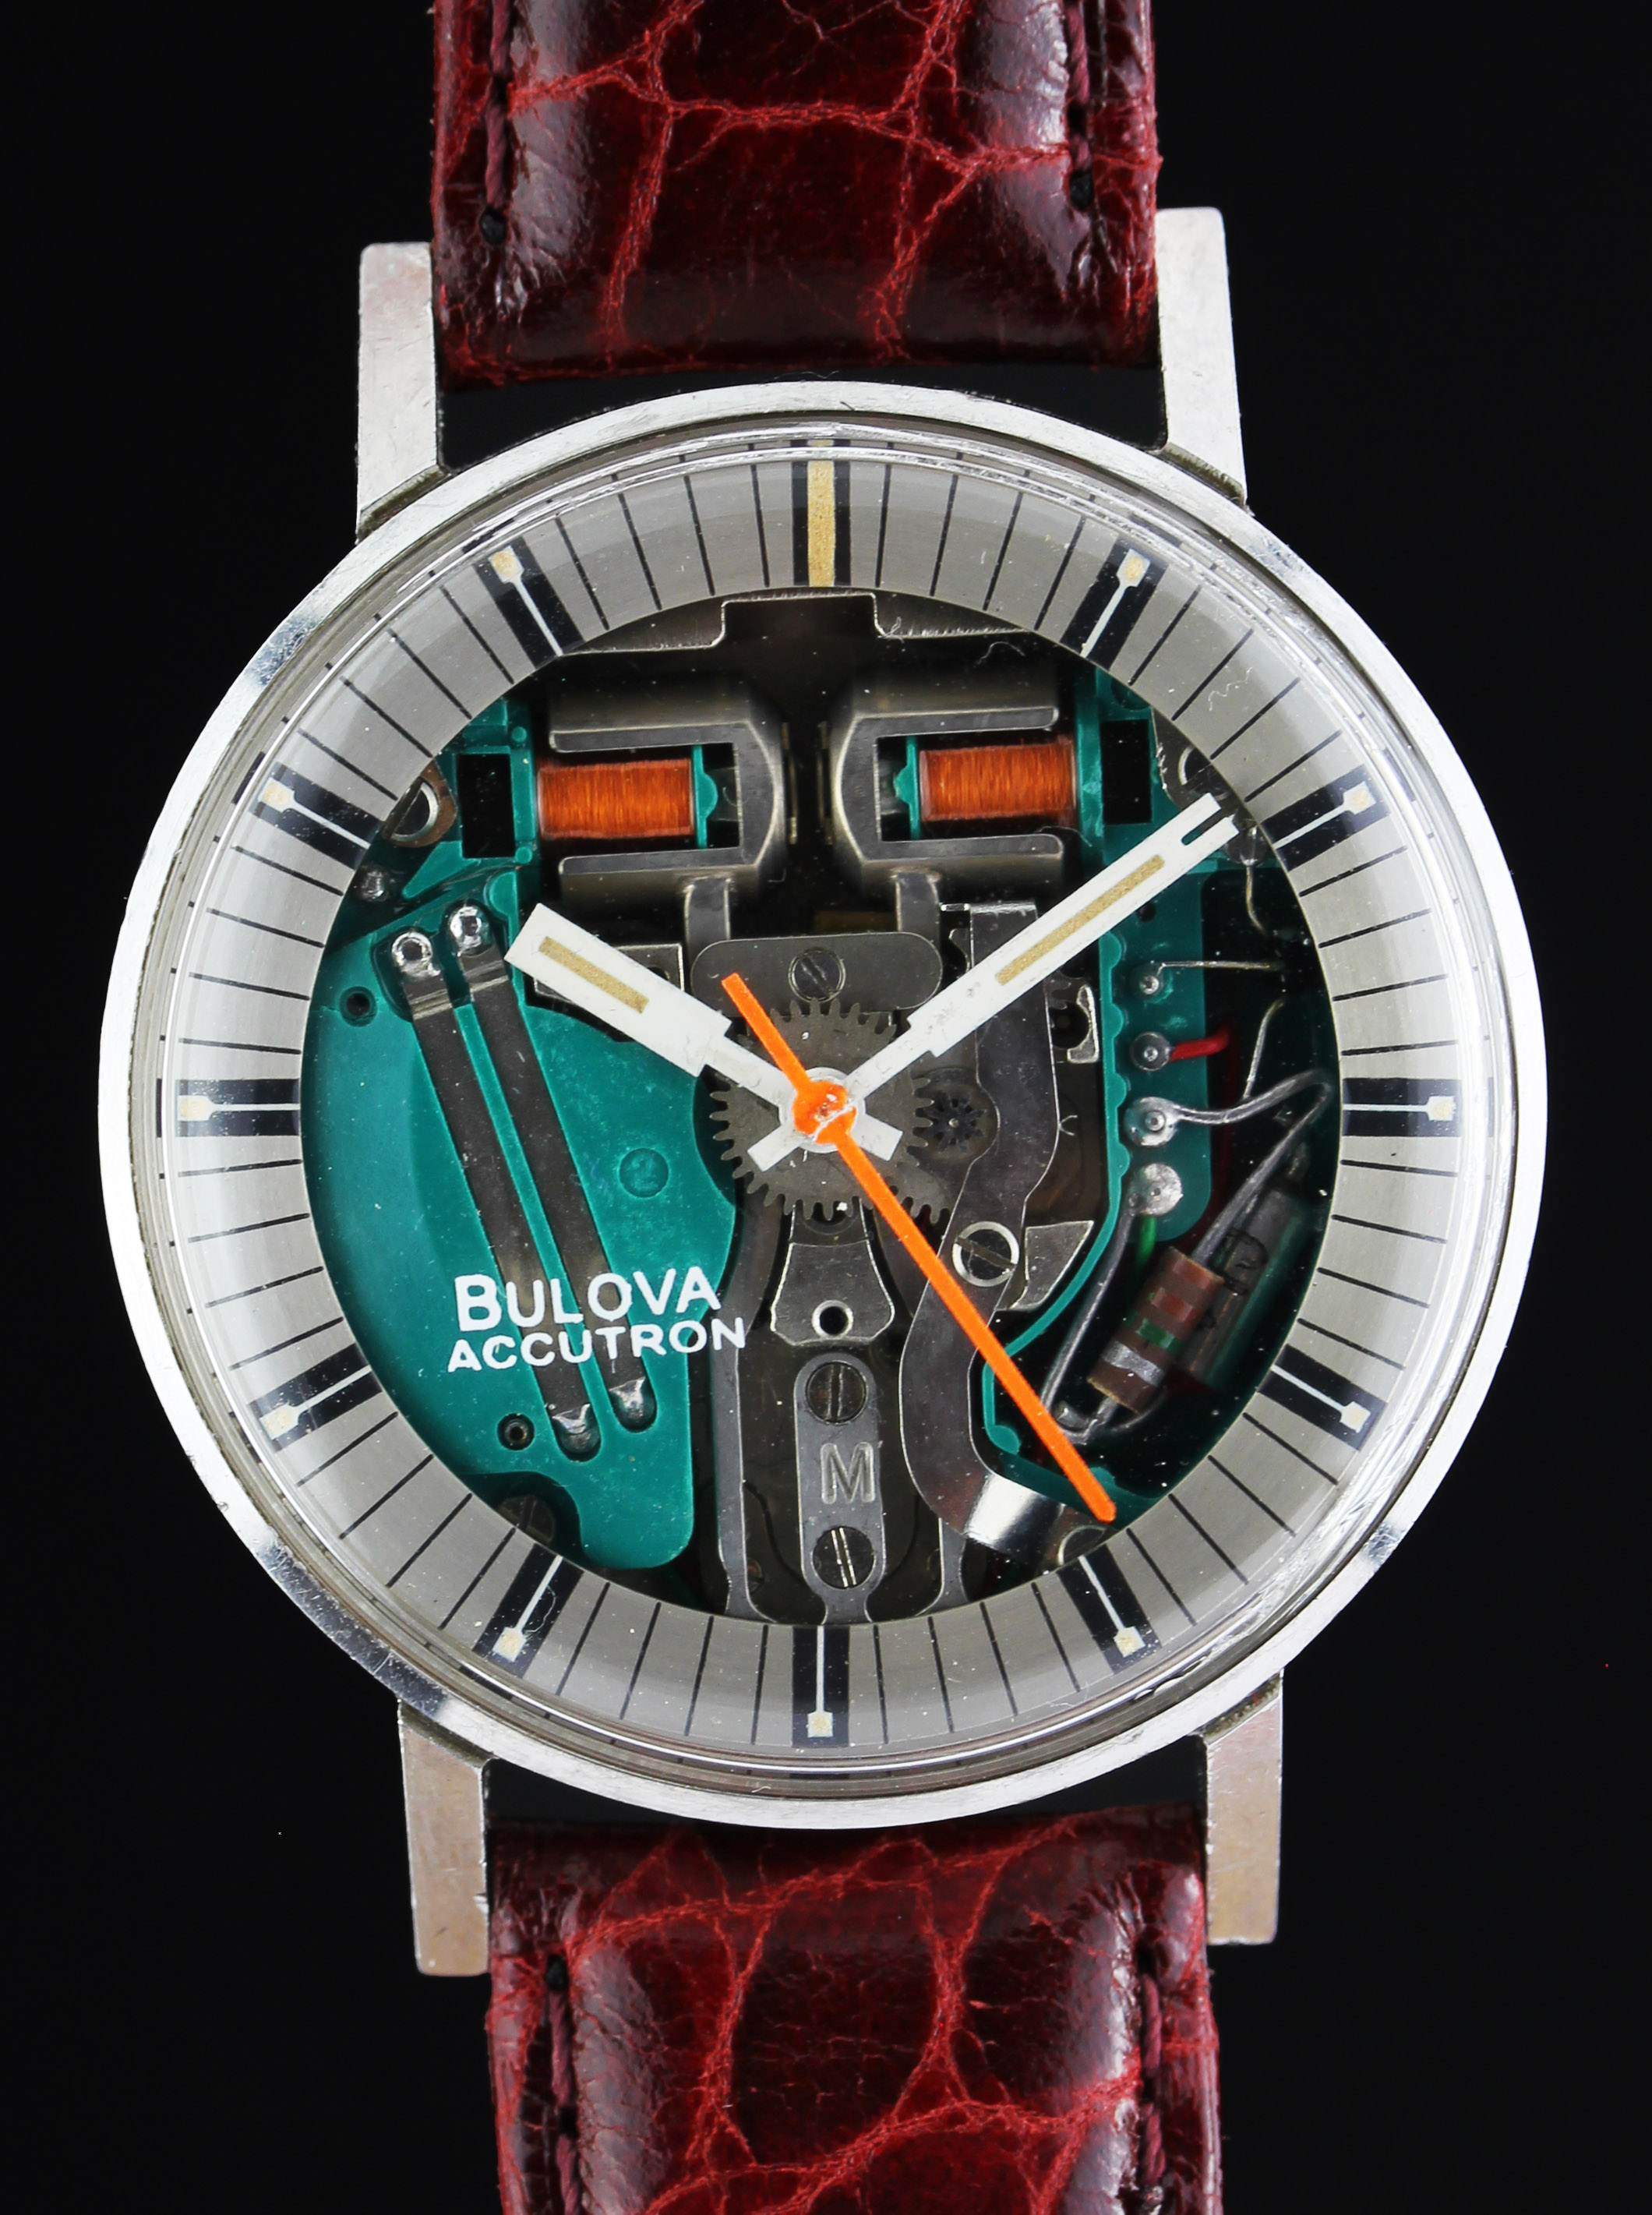 Bulova Accutron Spaceview